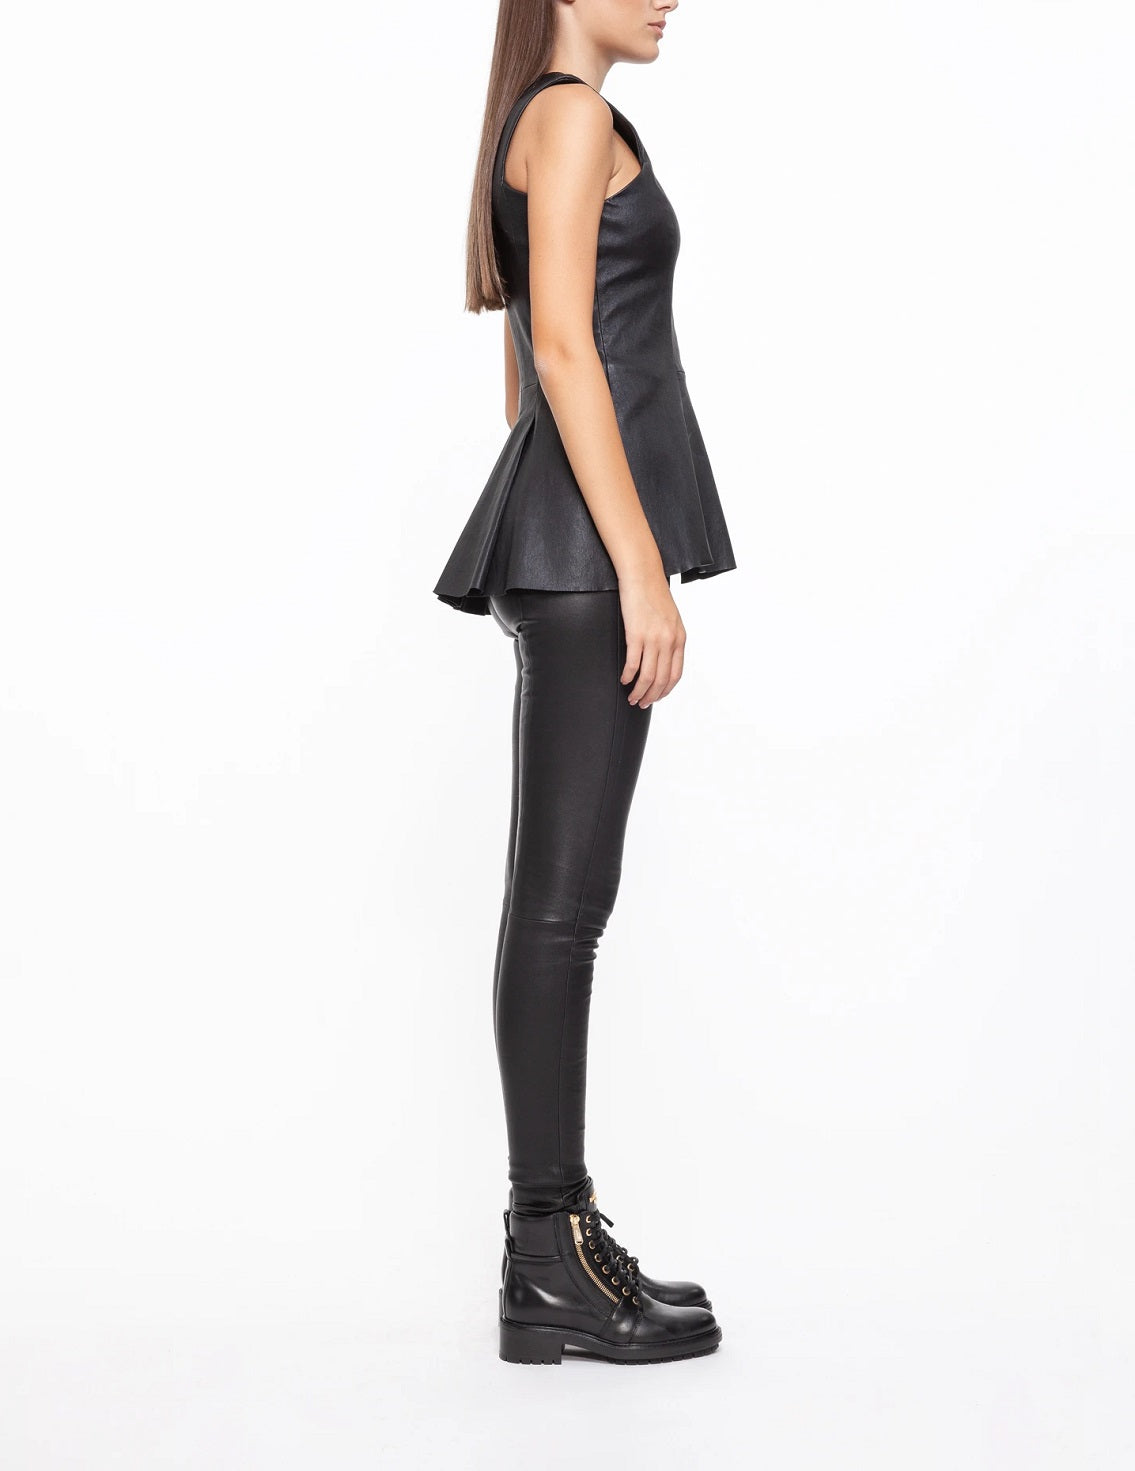 ORIBE Leather Sleeveless Top